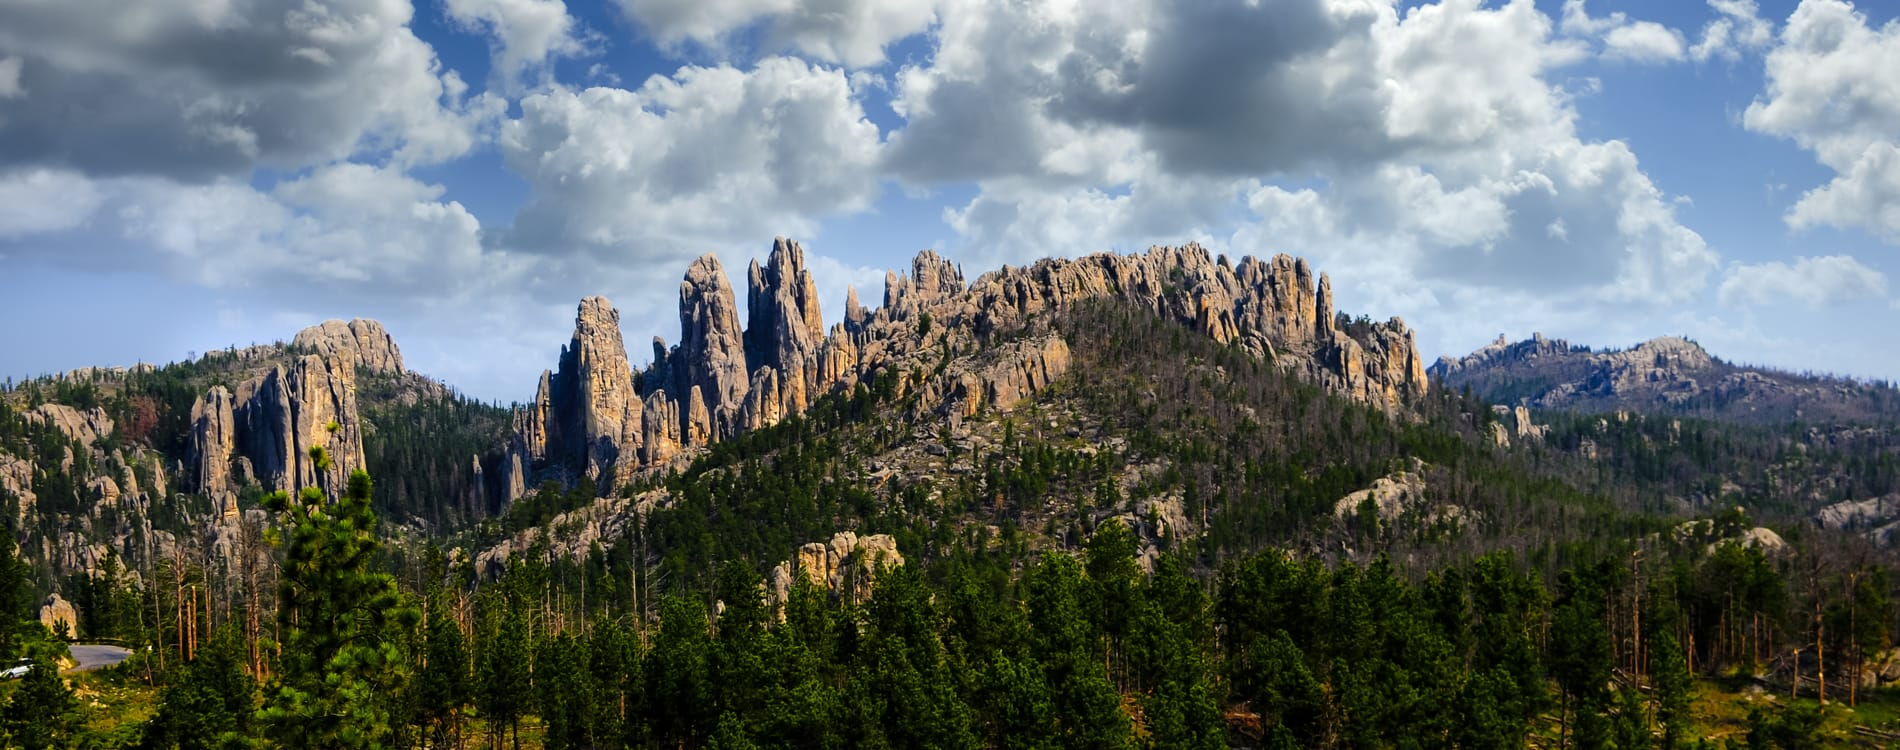 Black Hills - Pinnacles in Custer State Park